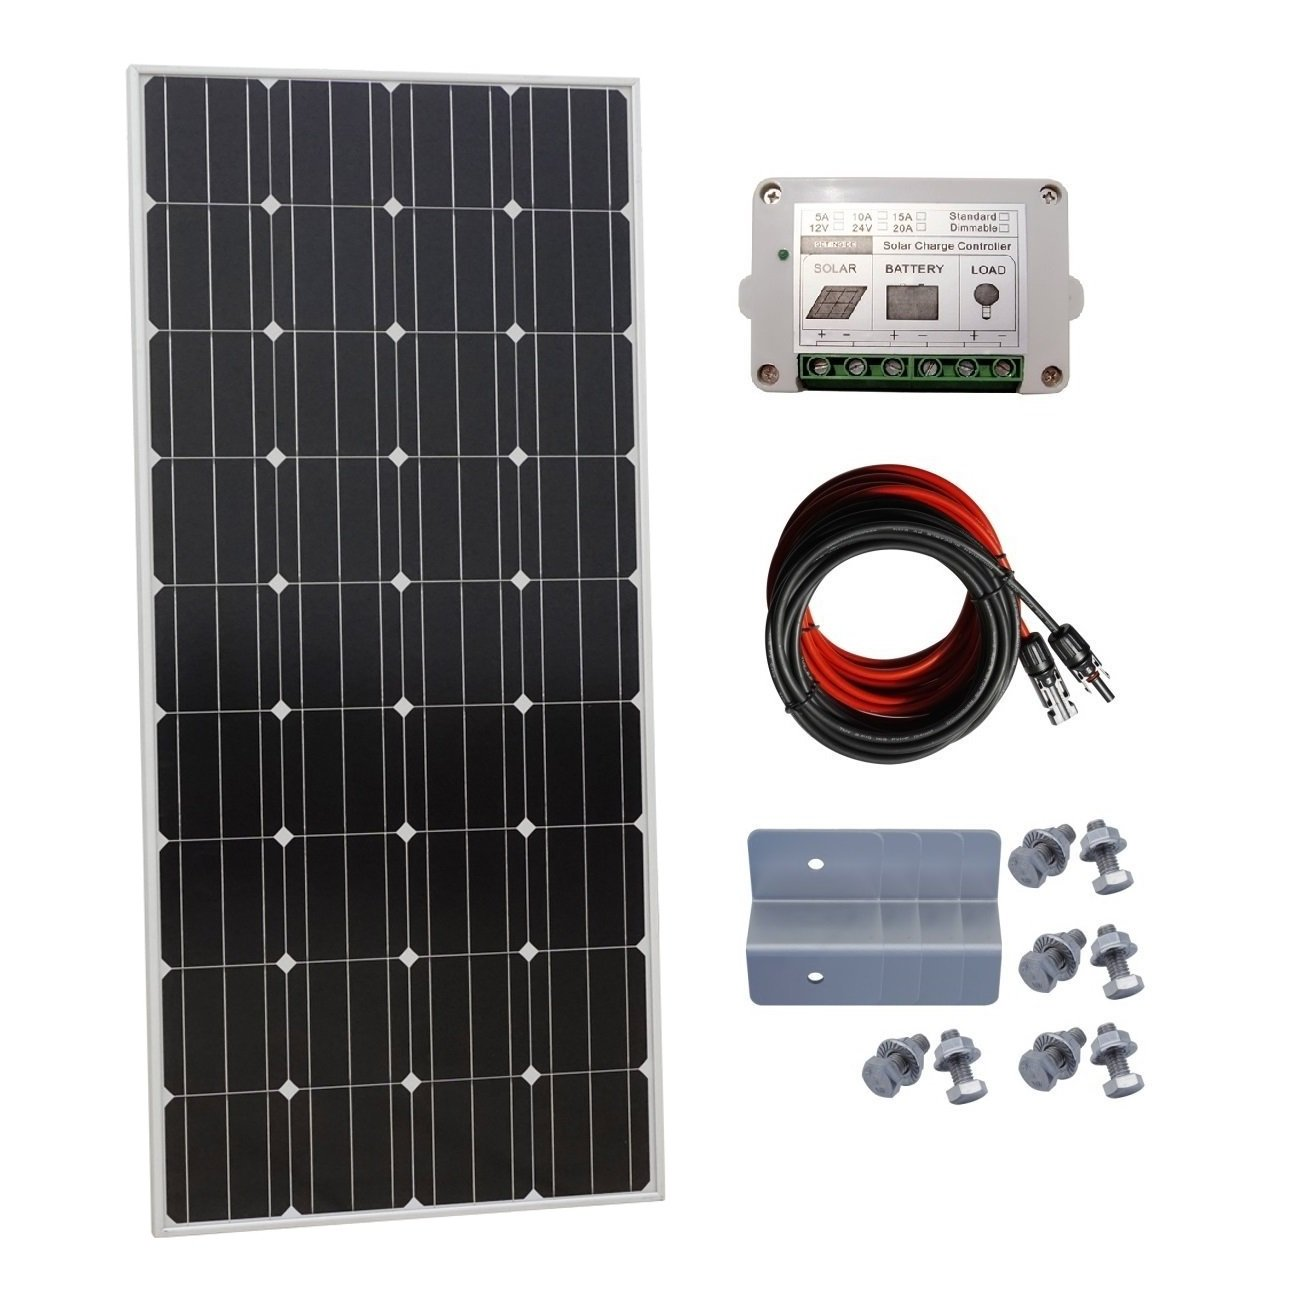 ECO-WORTHY 160 Watt 12 Volt Monocrystalline Solar Starter Kit with 15A Charge Controller